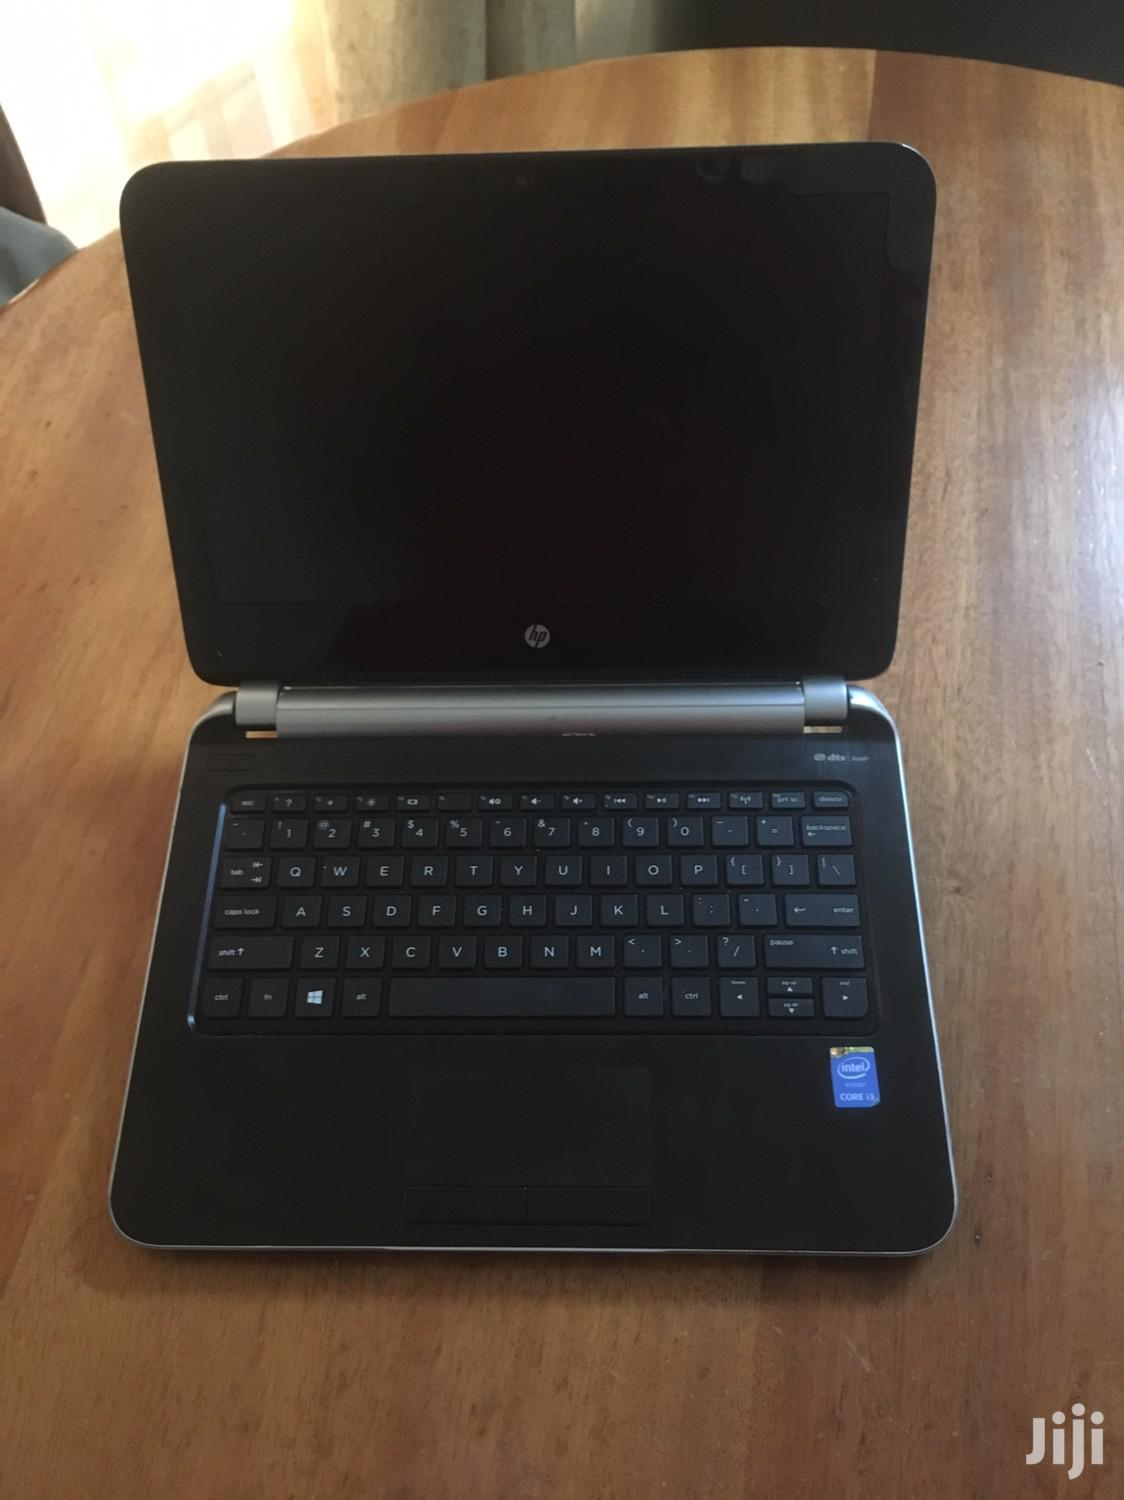 Archive: Laptop HP 4GB Intel Core i3 HDD 320GB